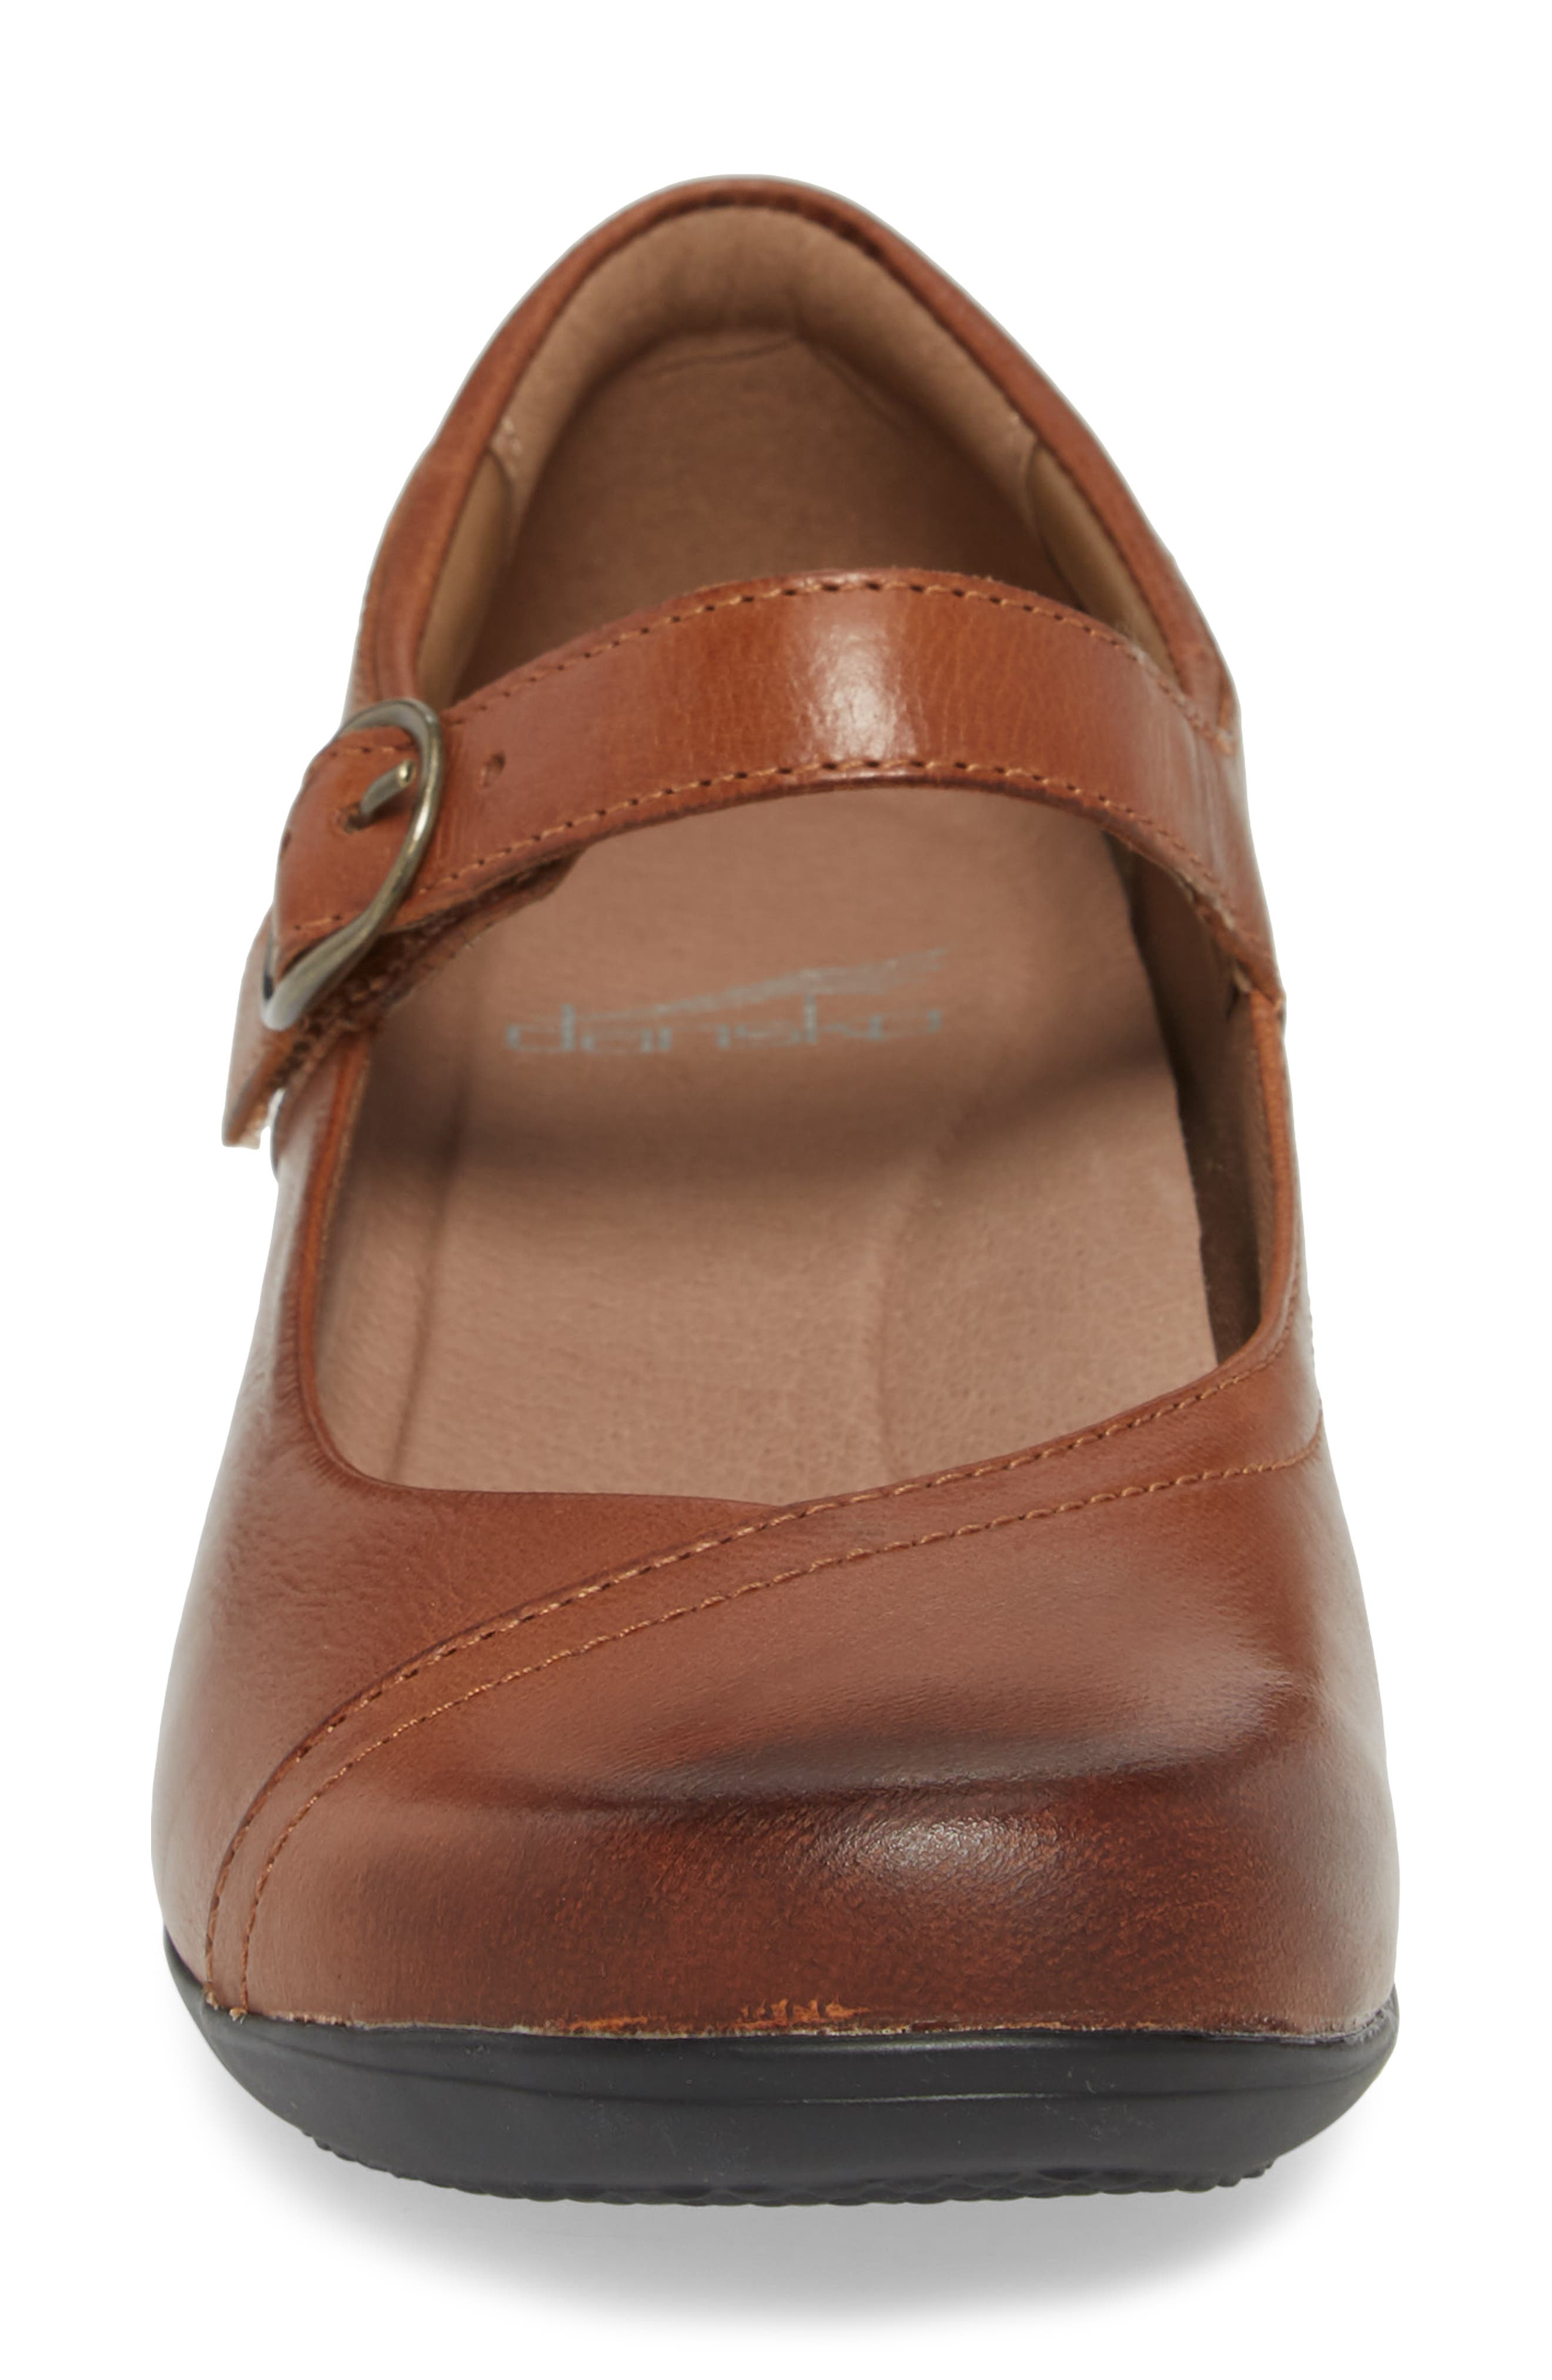 Fawna Mary Jane Flat,                             Alternate thumbnail 4, color,                             Chestnut Leather